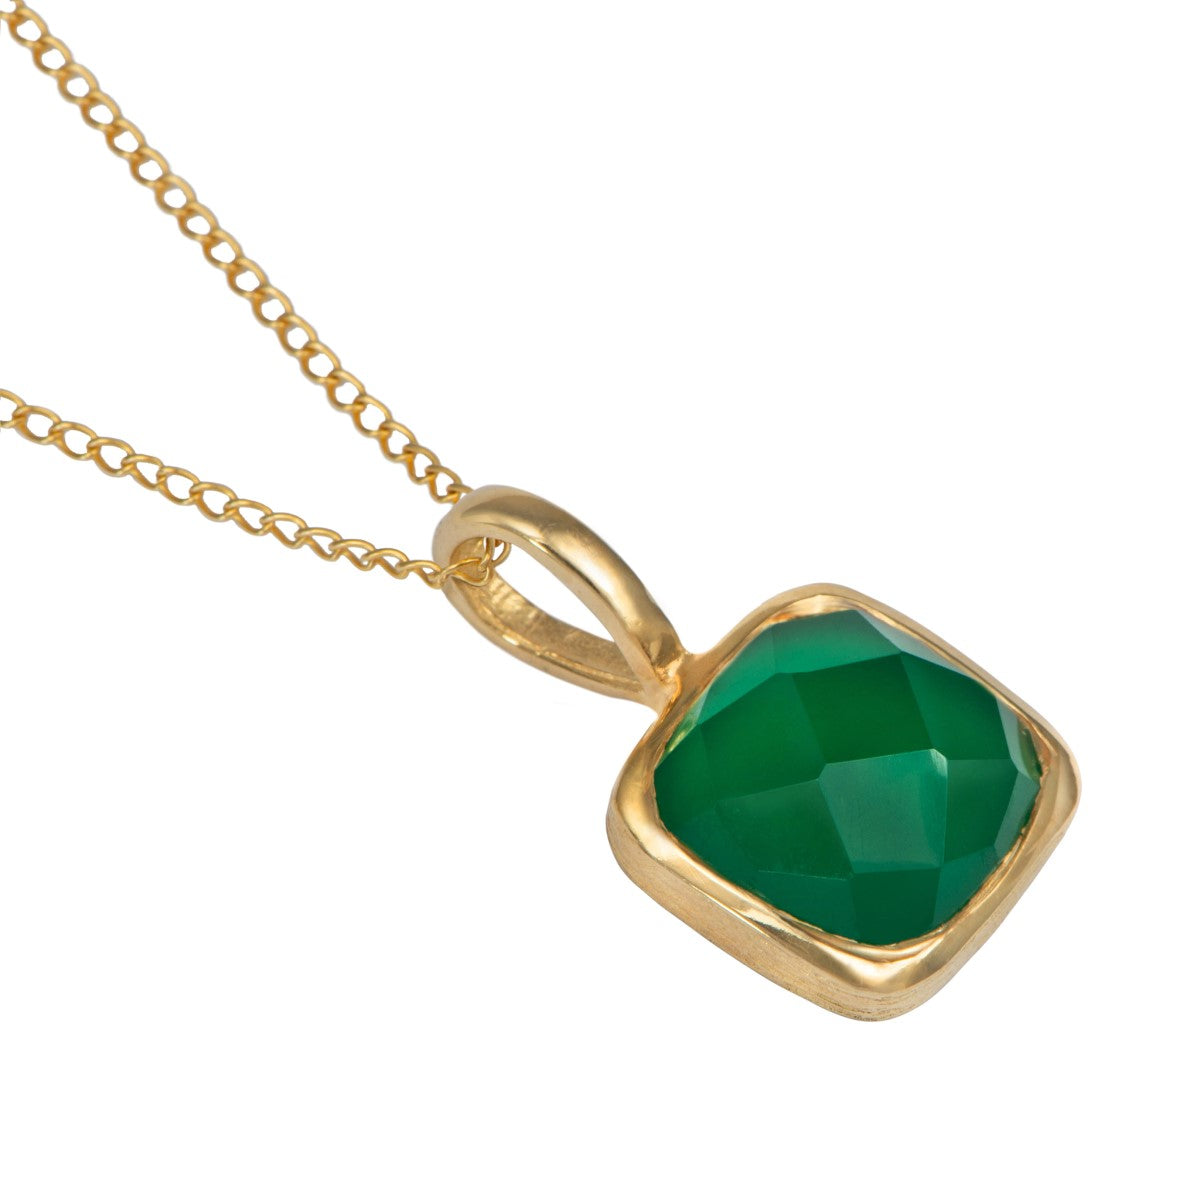 Gold Plated Sterling Silver Pendant Necklace with a Faceted Square Gemstone - Green Onyx